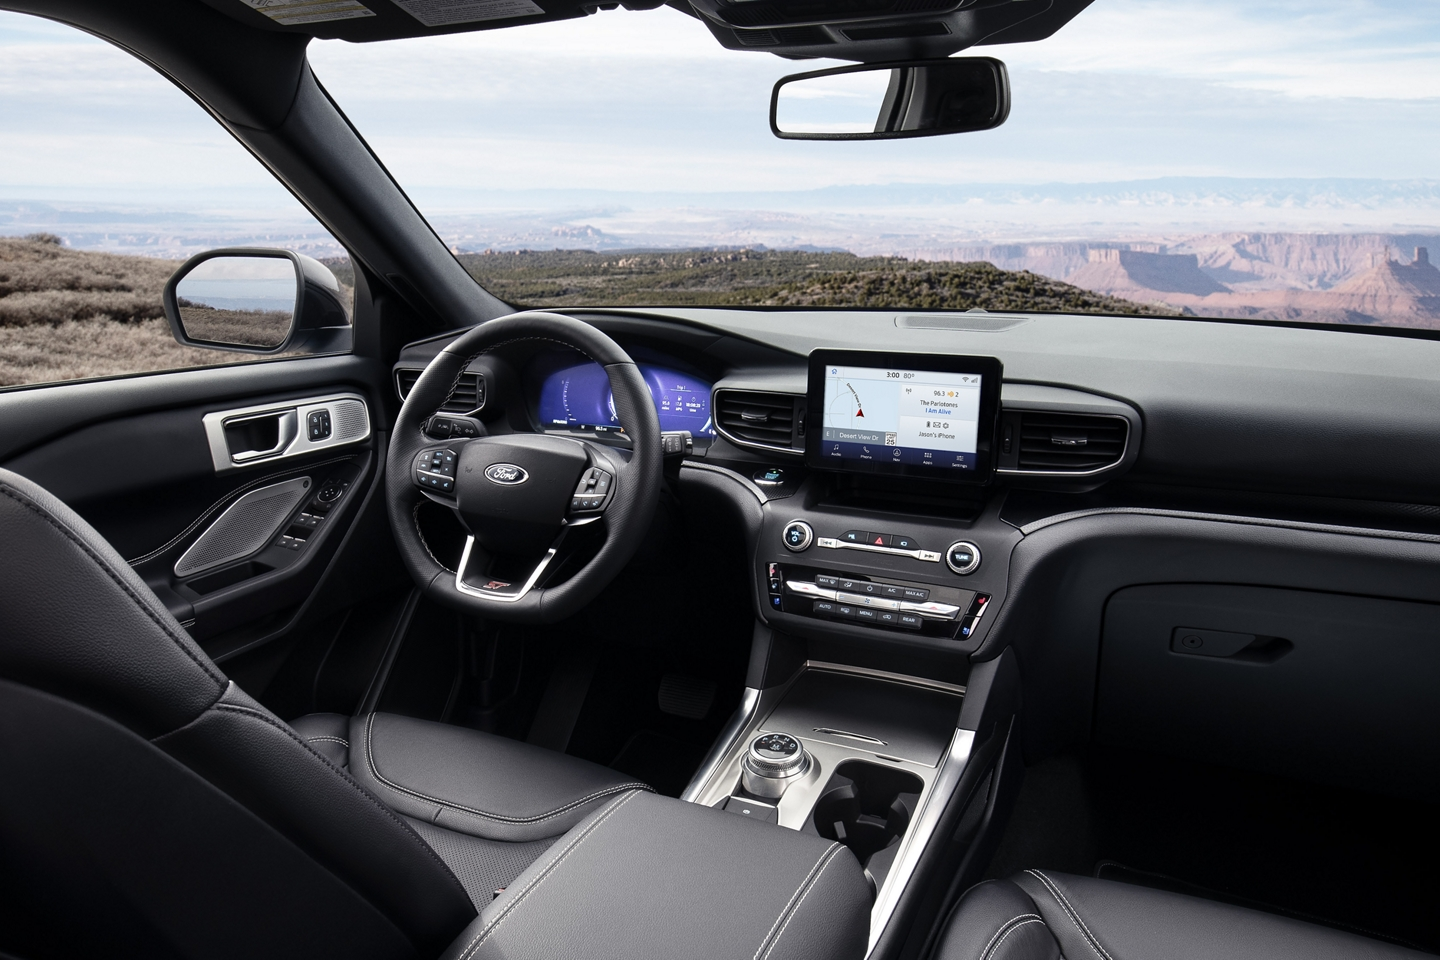 Interior of the 2020 Explorer